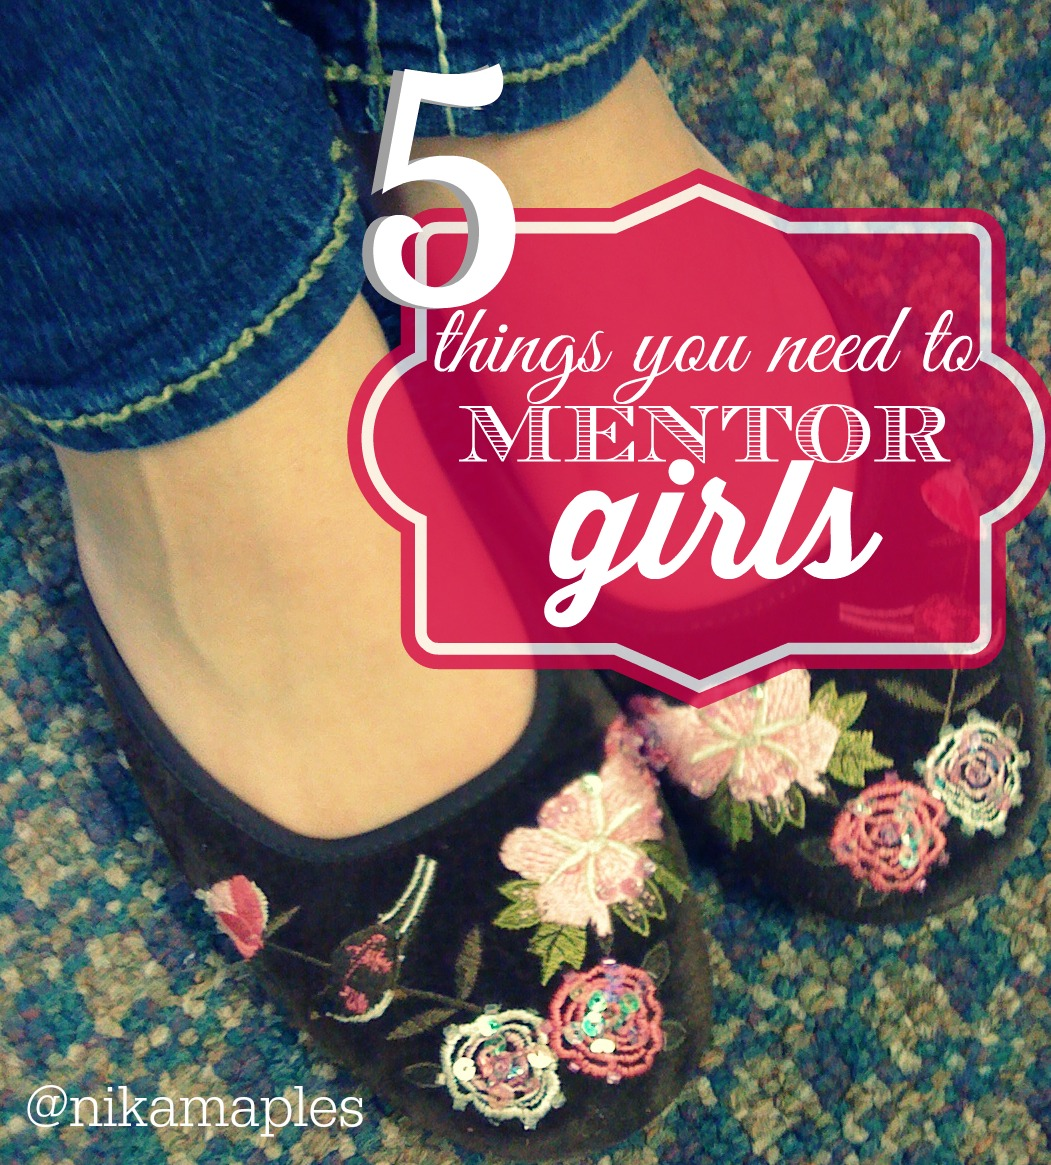 Five Things You Need to Mentor Girls